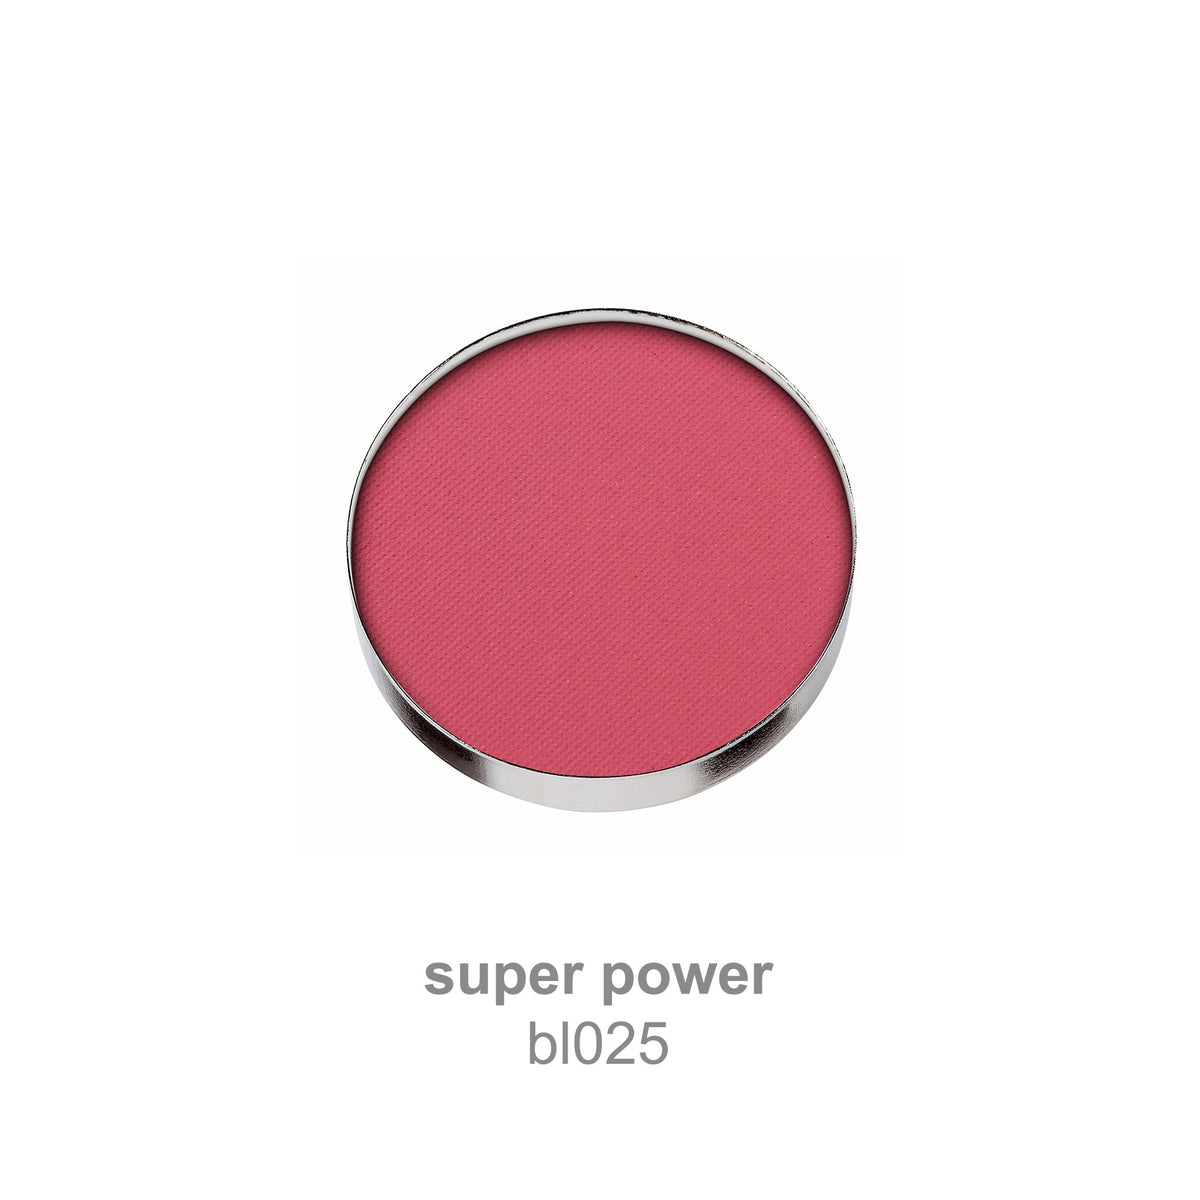 super power bl025